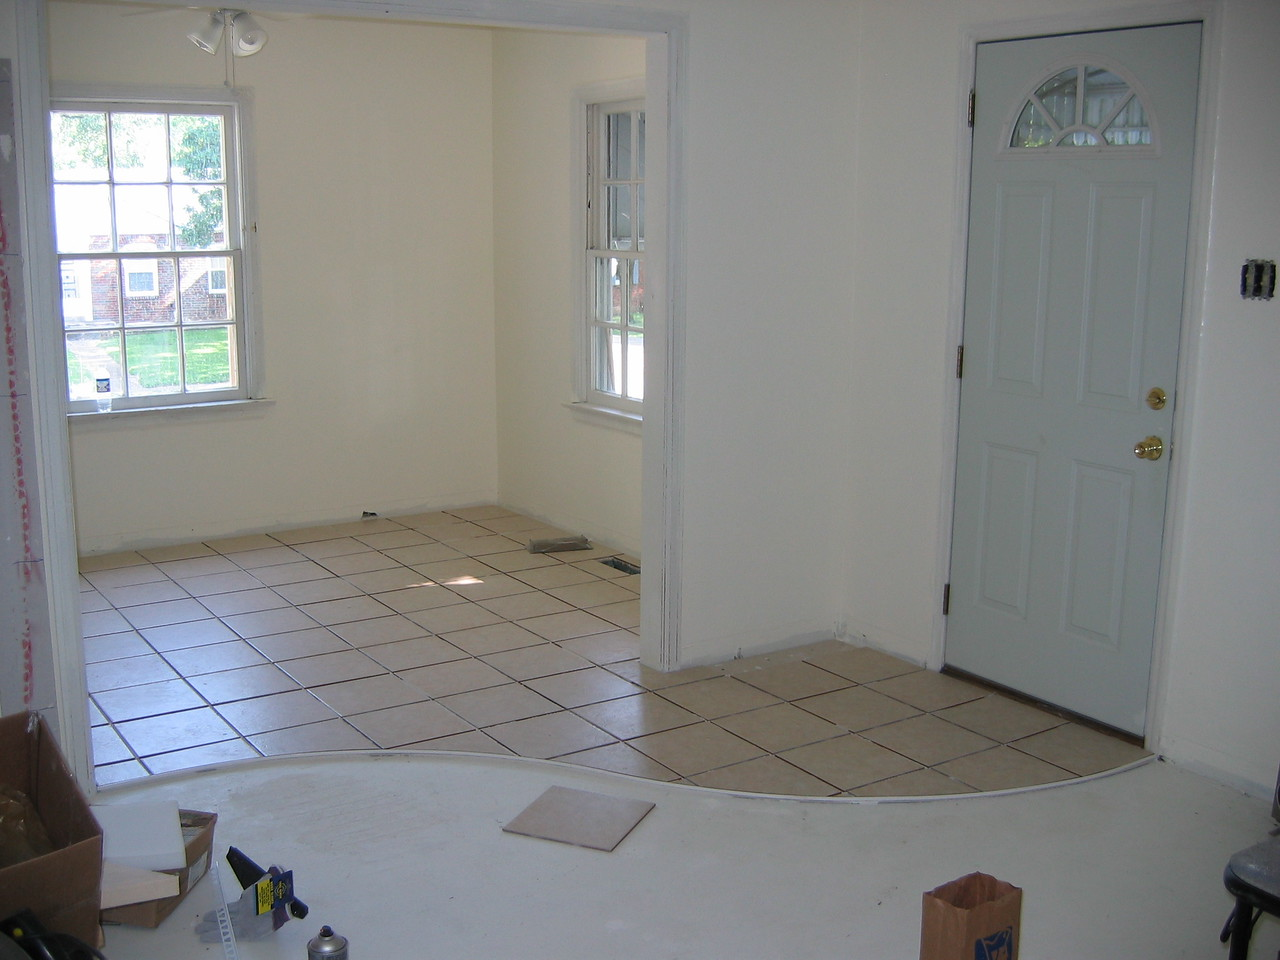 CERAMIC TILE View from living room into dining room.